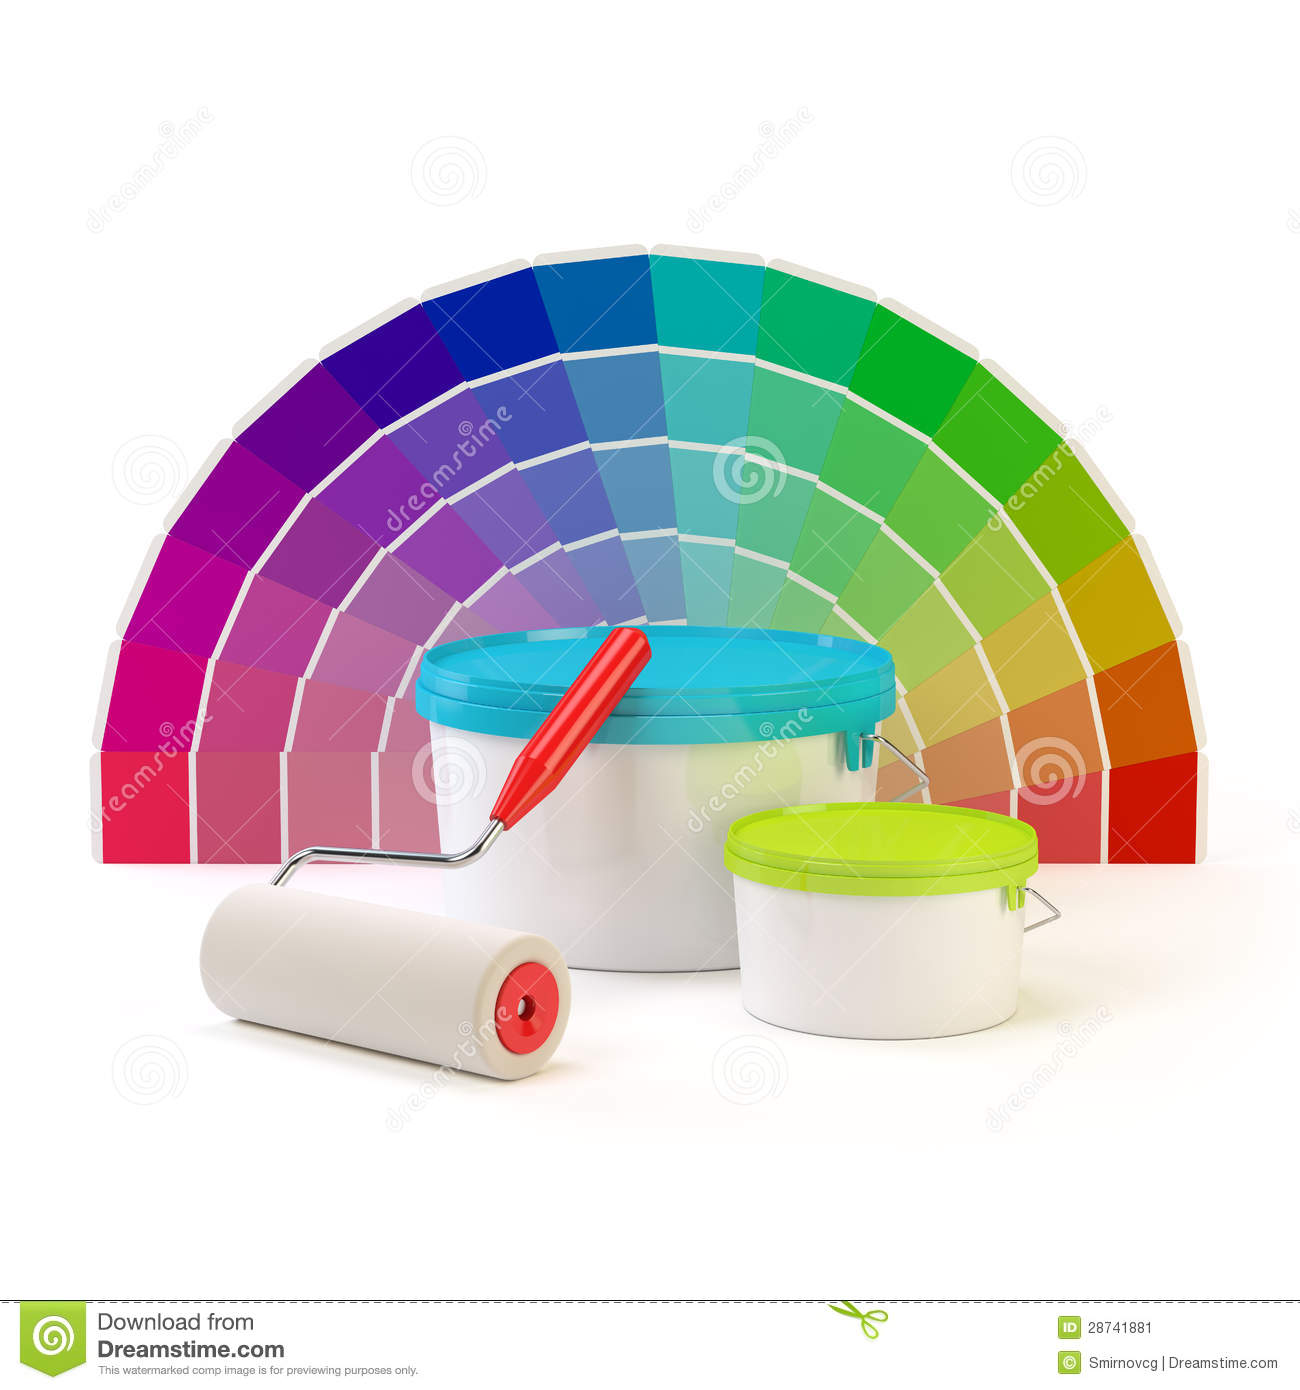 pantone color palette paint roller and cans of paint stock image